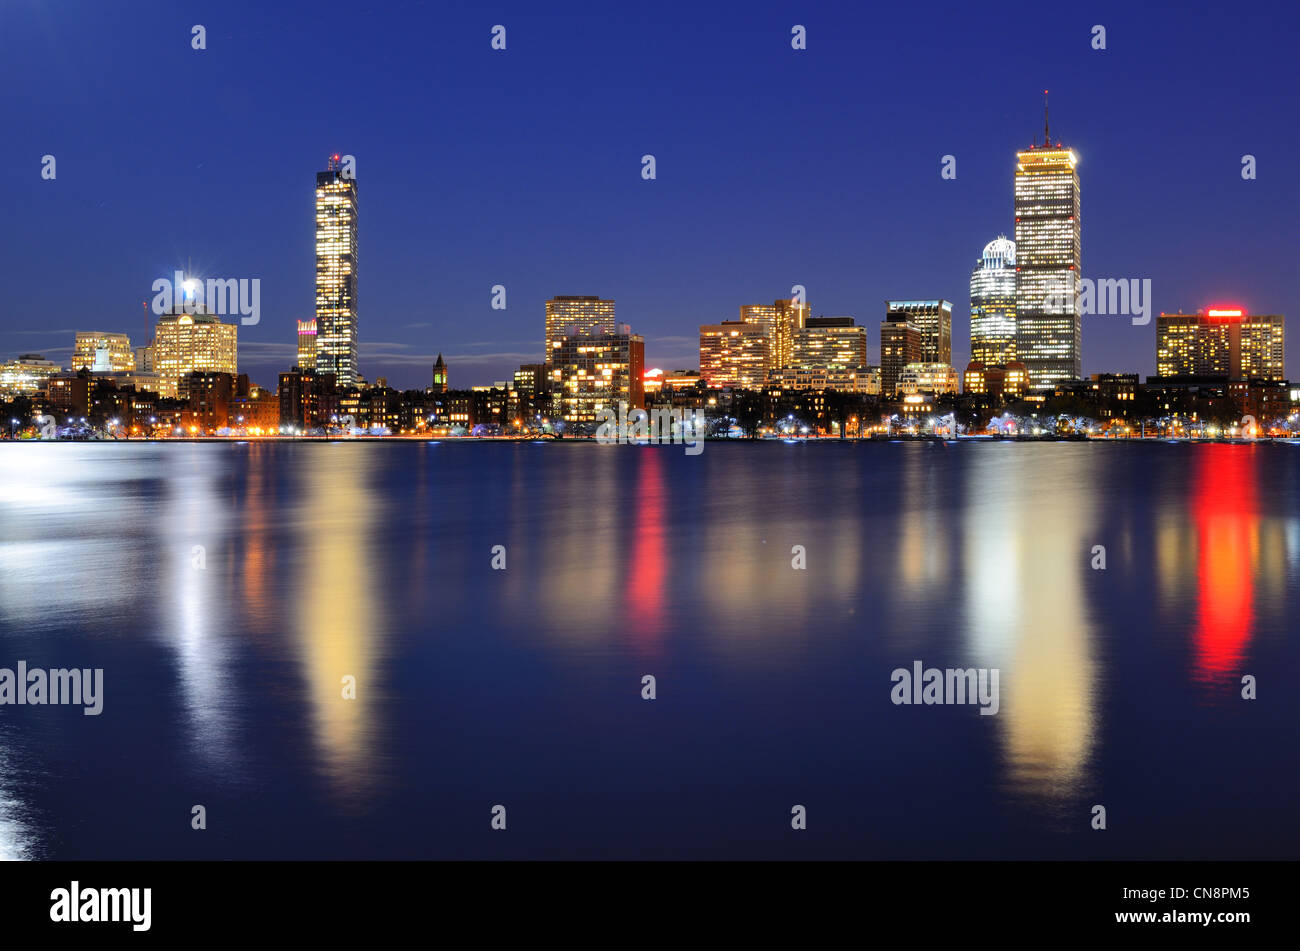 The cityscape of Back Bay Boston, Massachusetts, USA from across the Charles River. Stock Photo